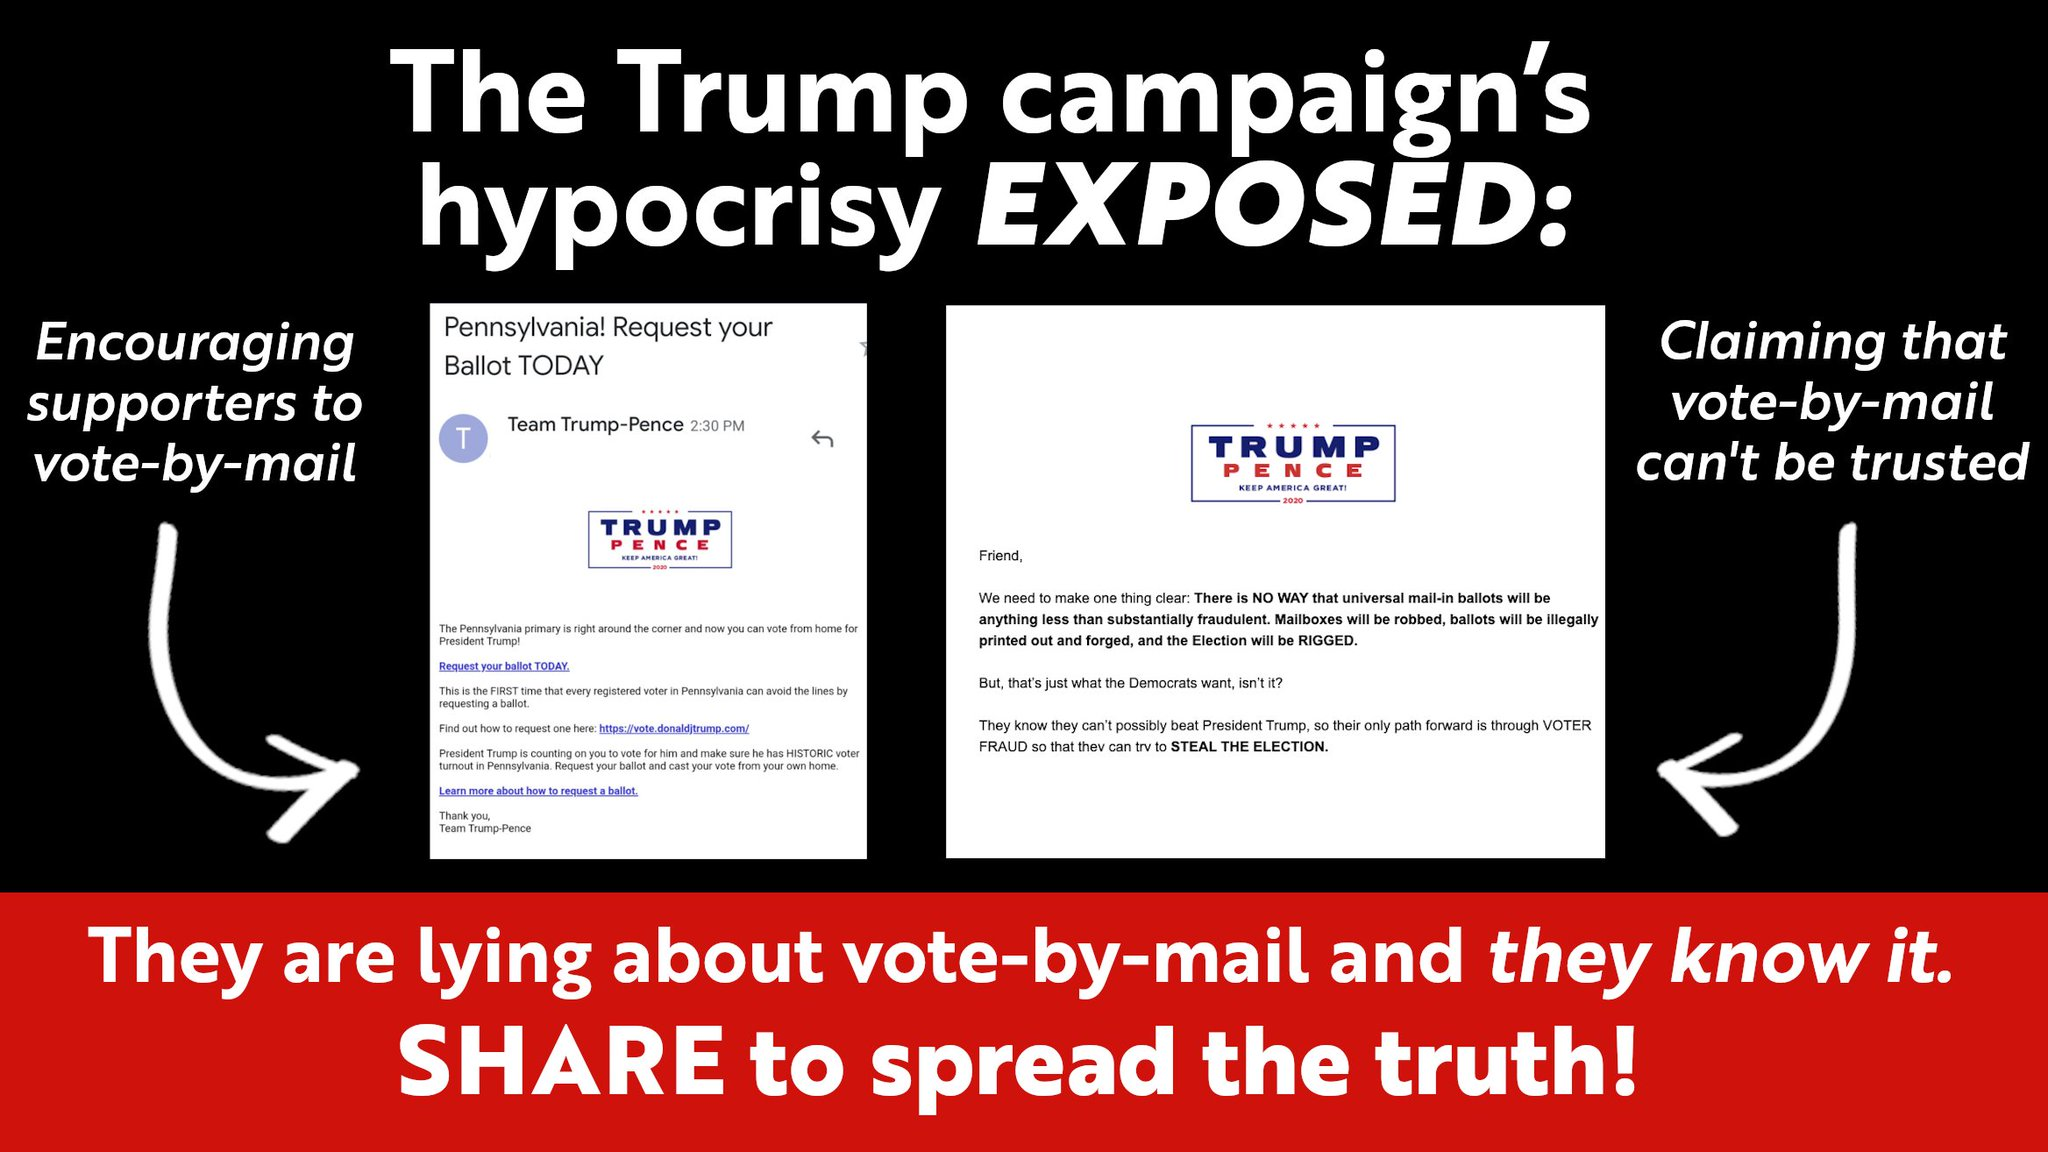 BREAKING: Uncovered emails from the Trump campaign show they are telling their supporters to vote-by-mail.  At the same time, they are claiming that vote-by-mail can't be trusted.  They're spreading lies so that only their supporters can vote safely.  RETWEET to spread the truth! https://t.co/oaVc0Wr9f6